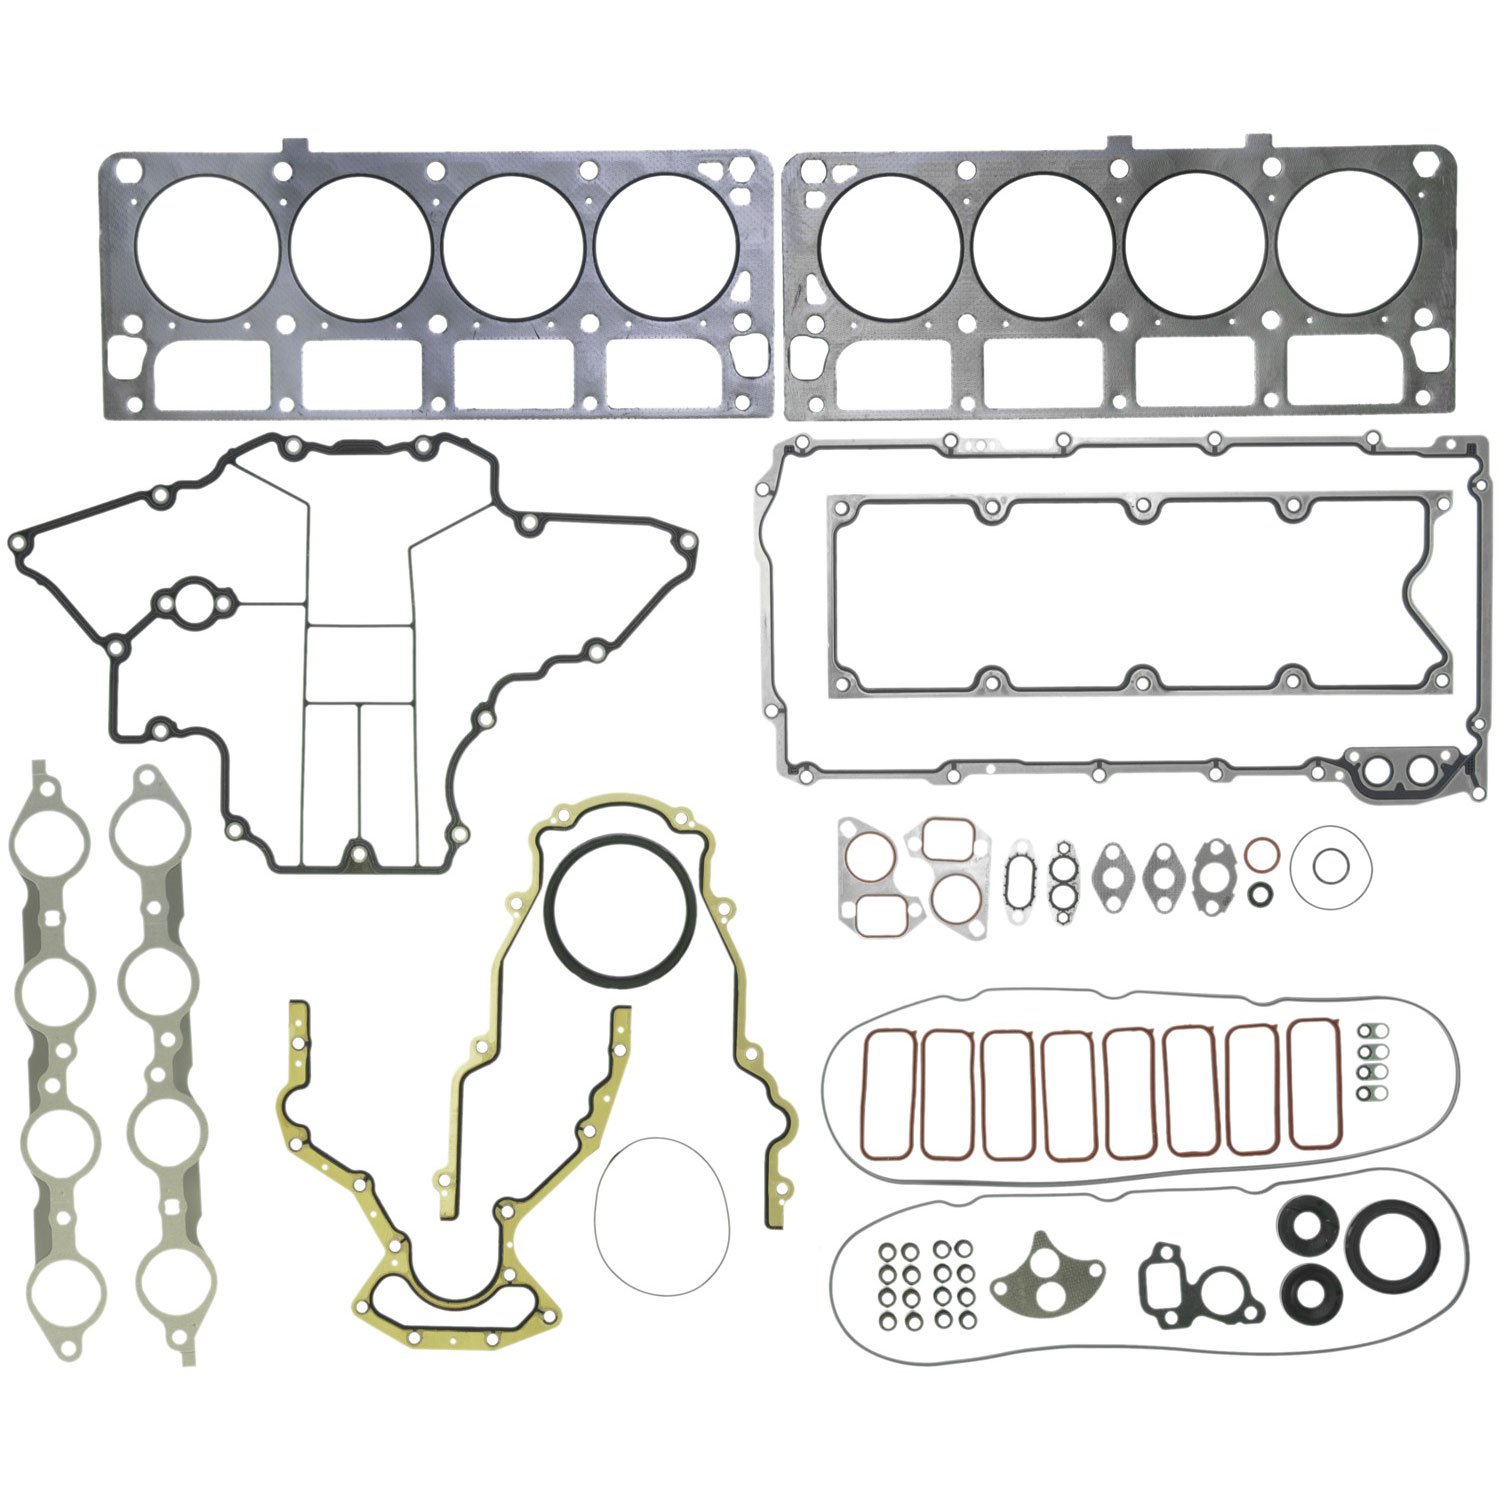 99-01 GM LS1 Gen III Victor Reinz Engine Gasket Set